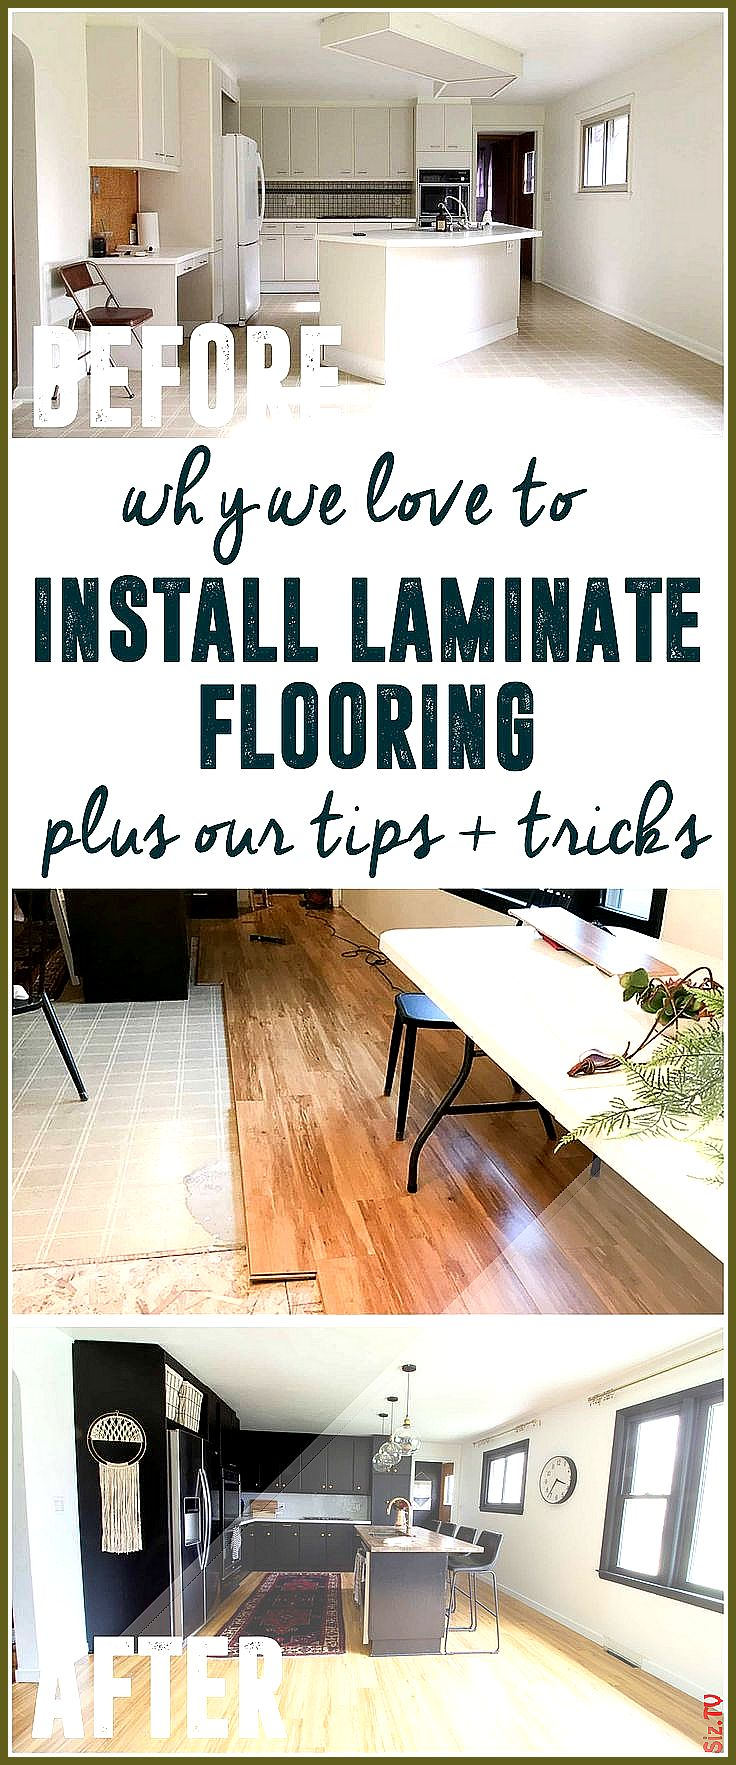 Why we LOVE to Install Laminate Flooring Tips for